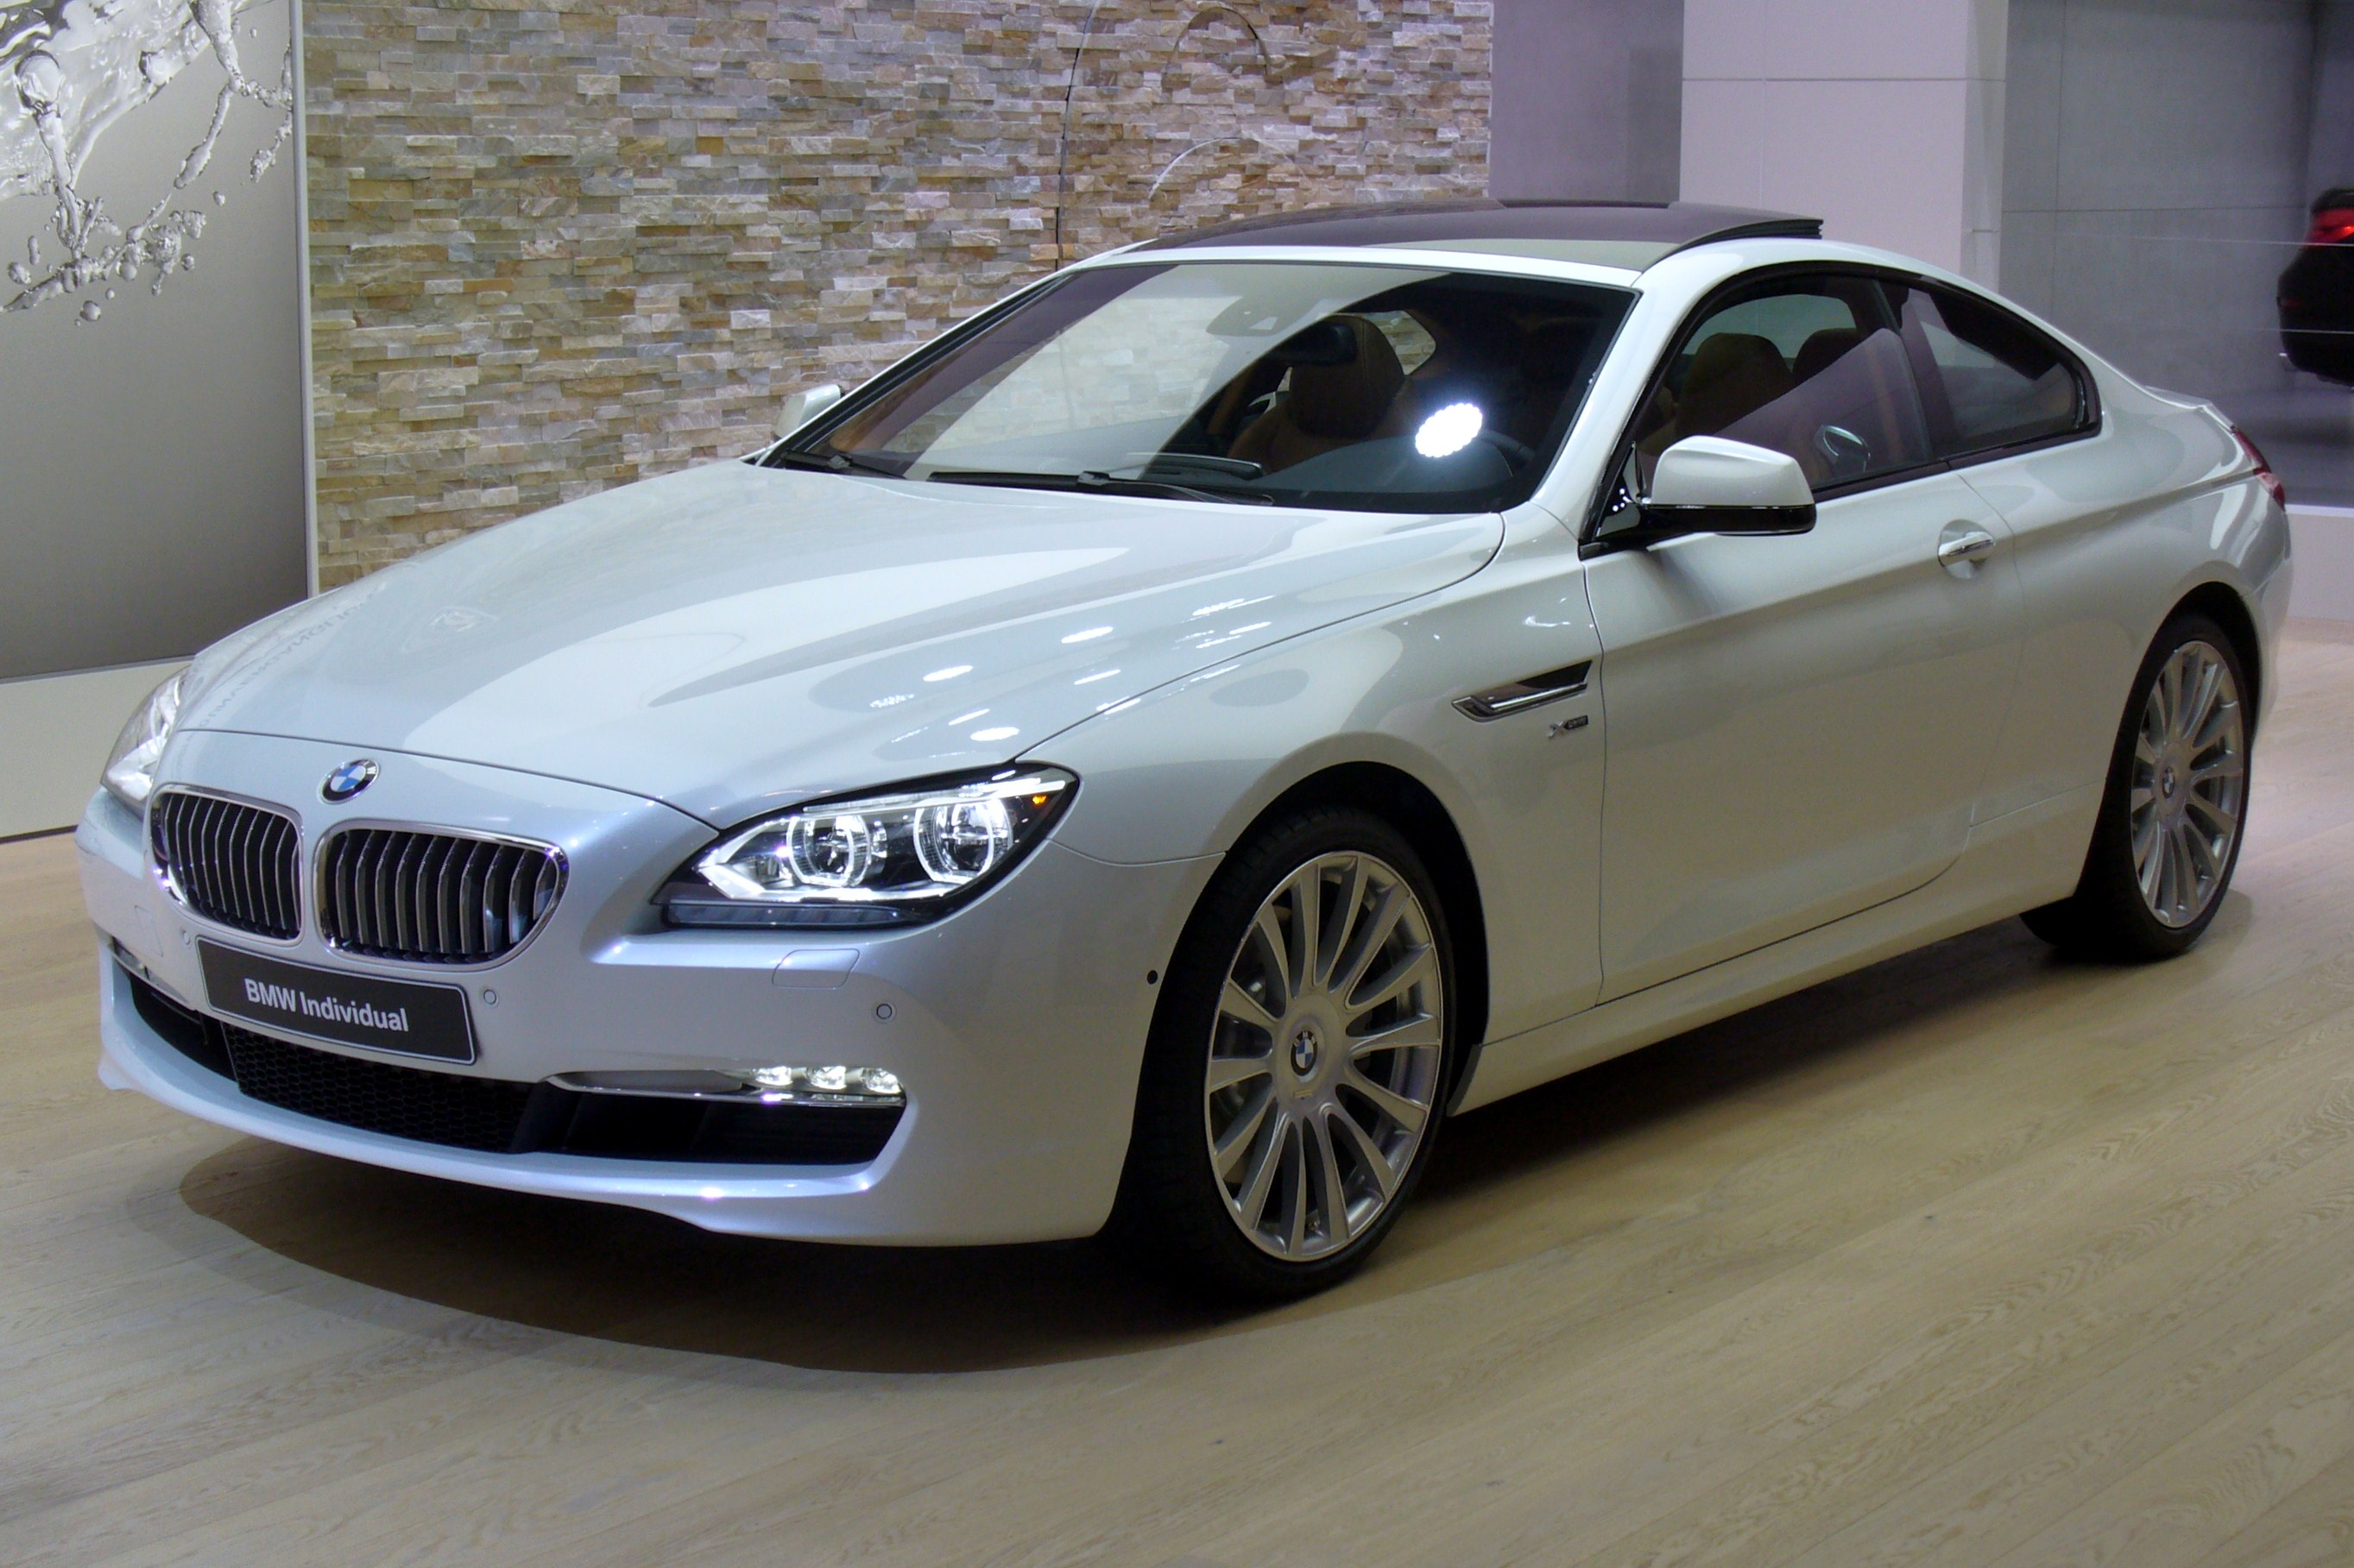 BMW 645Ci 2014 photo - 3